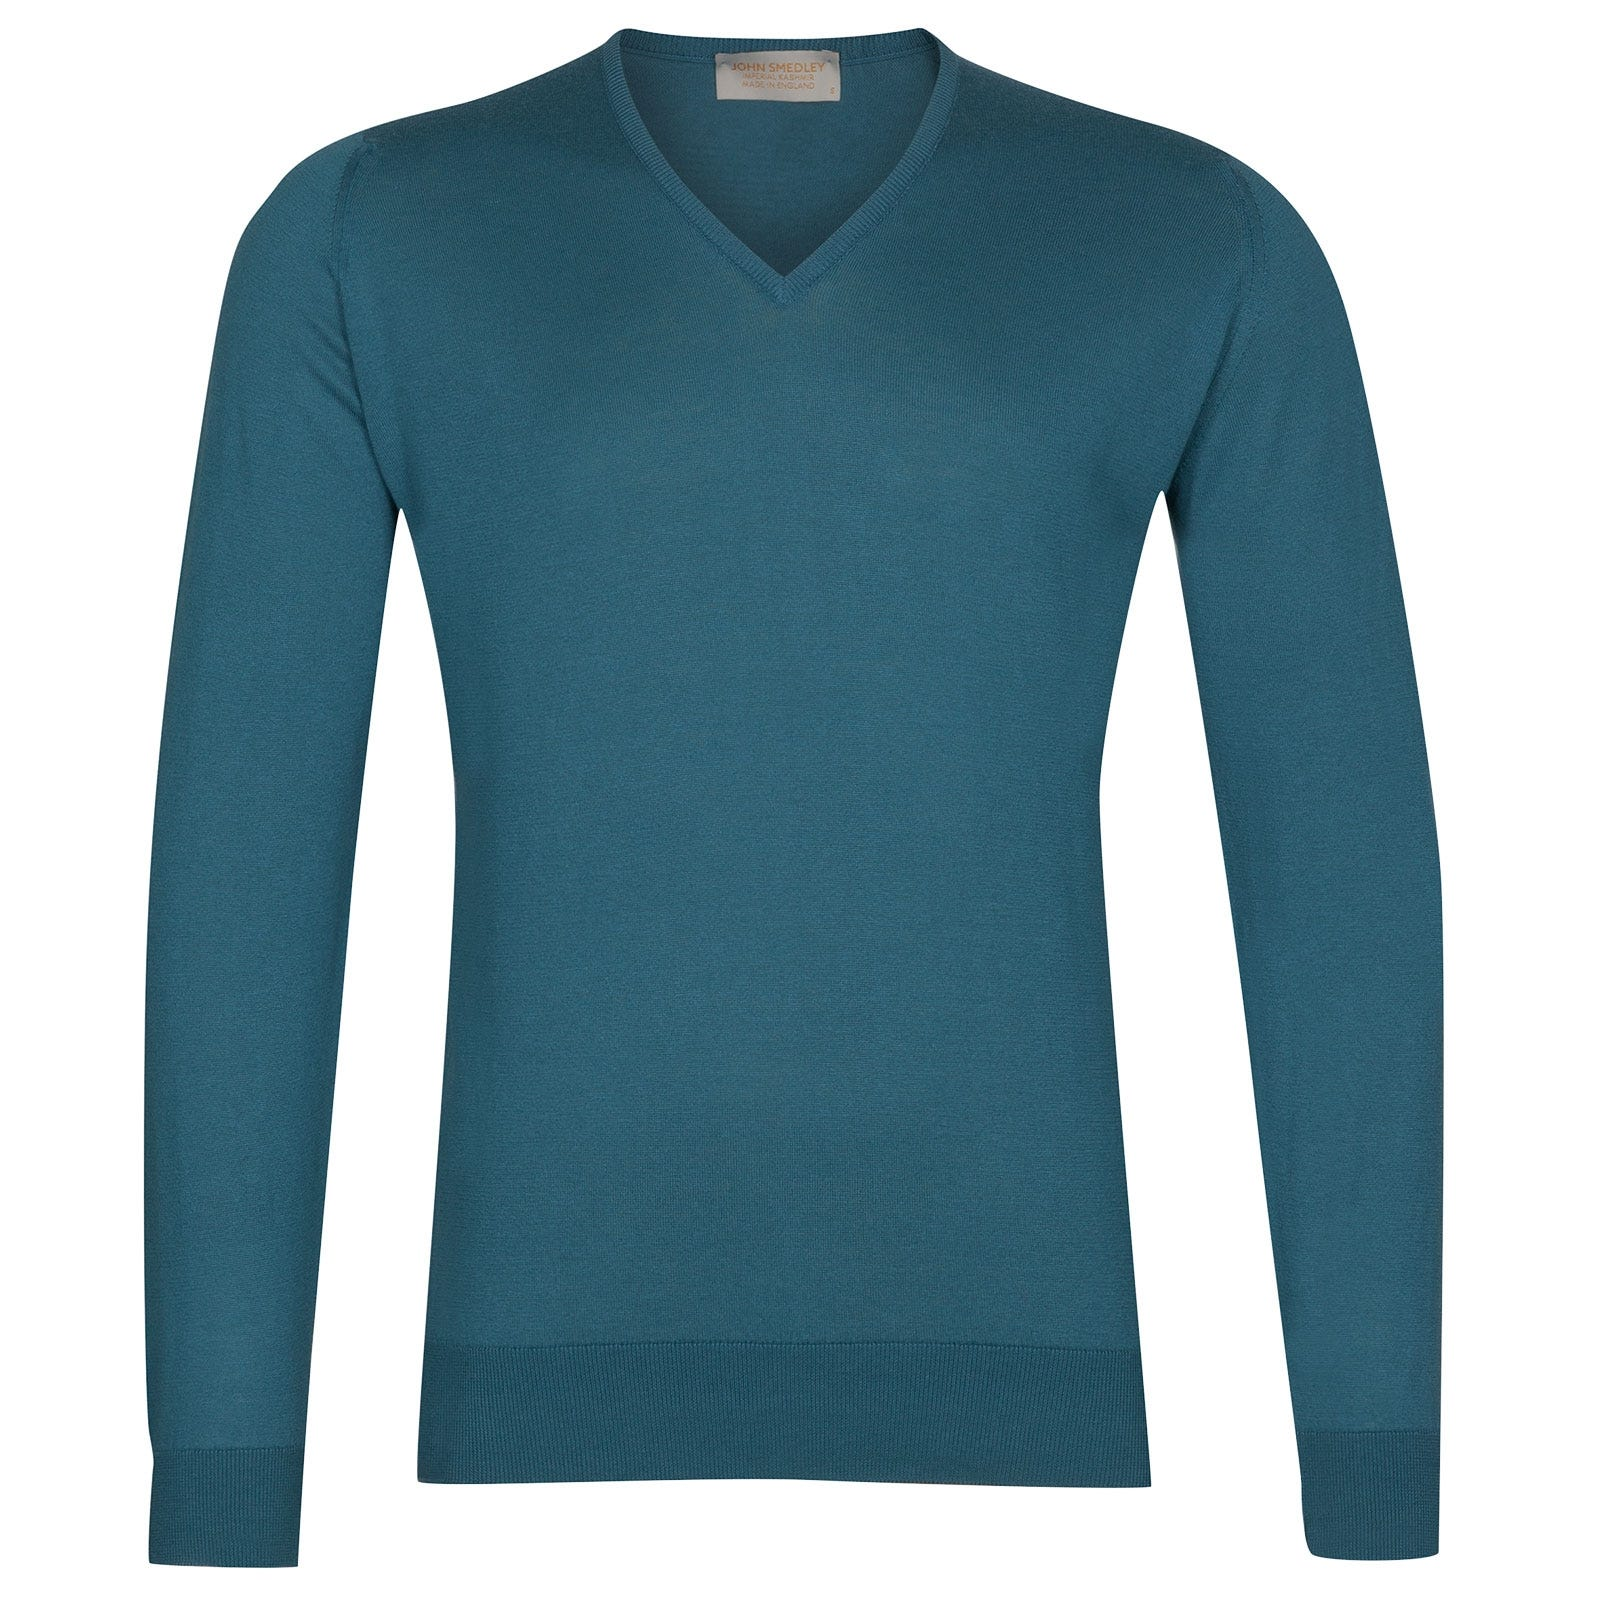 John Smedley Dayton Sea Island Cotton and Cashmere Pullover in Bias